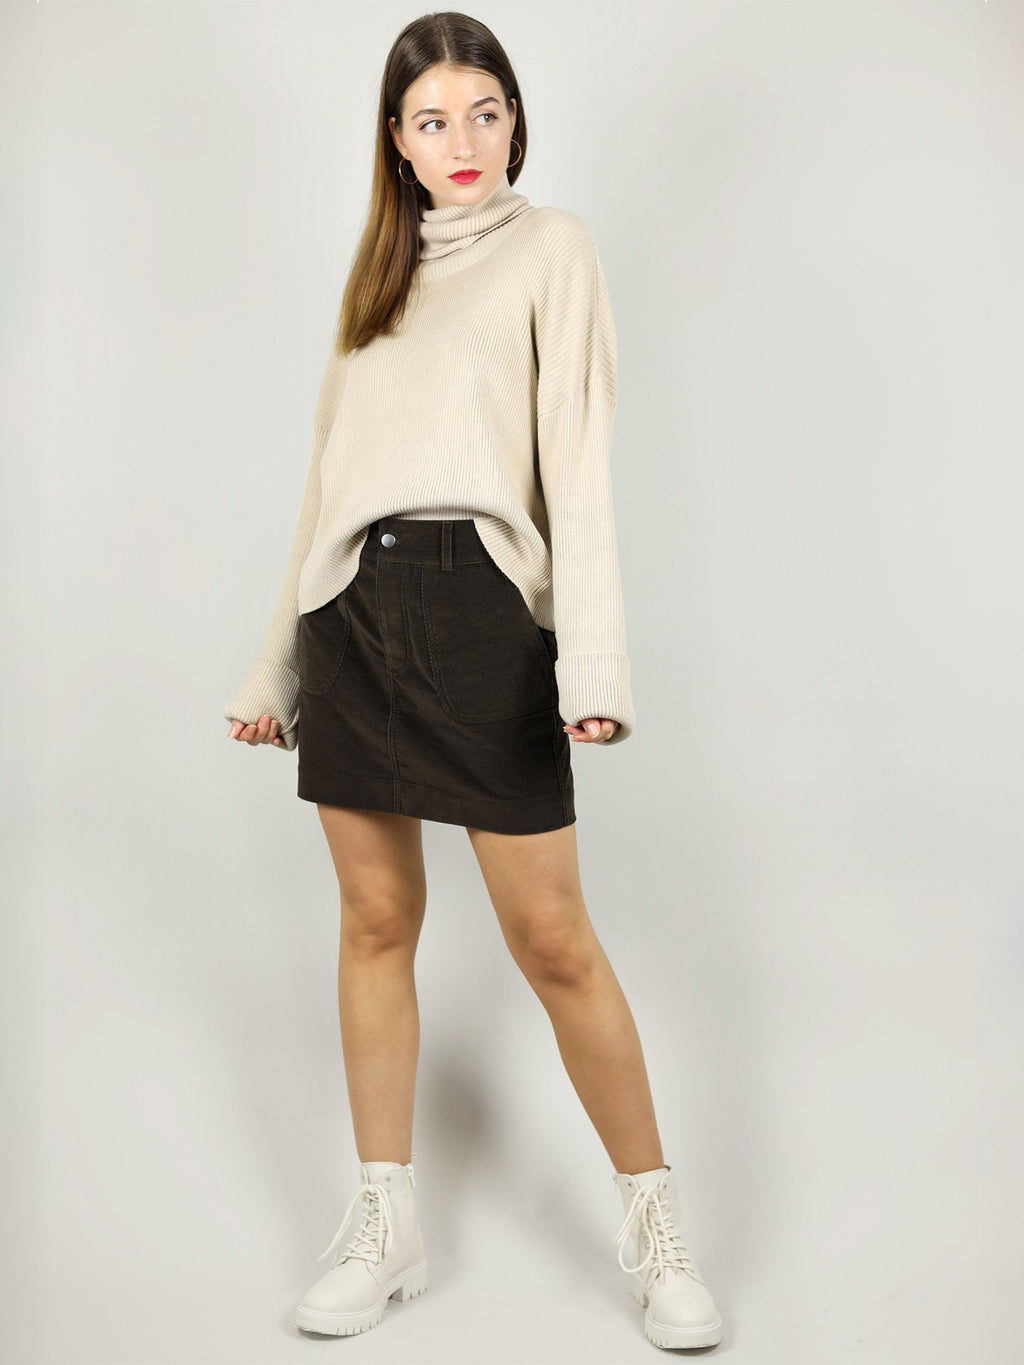 The turtleneck in beige is very cosy and made from 100% organic cotton. It is very comfortable with slightly loose fit and extra long roll neck and sleeves.